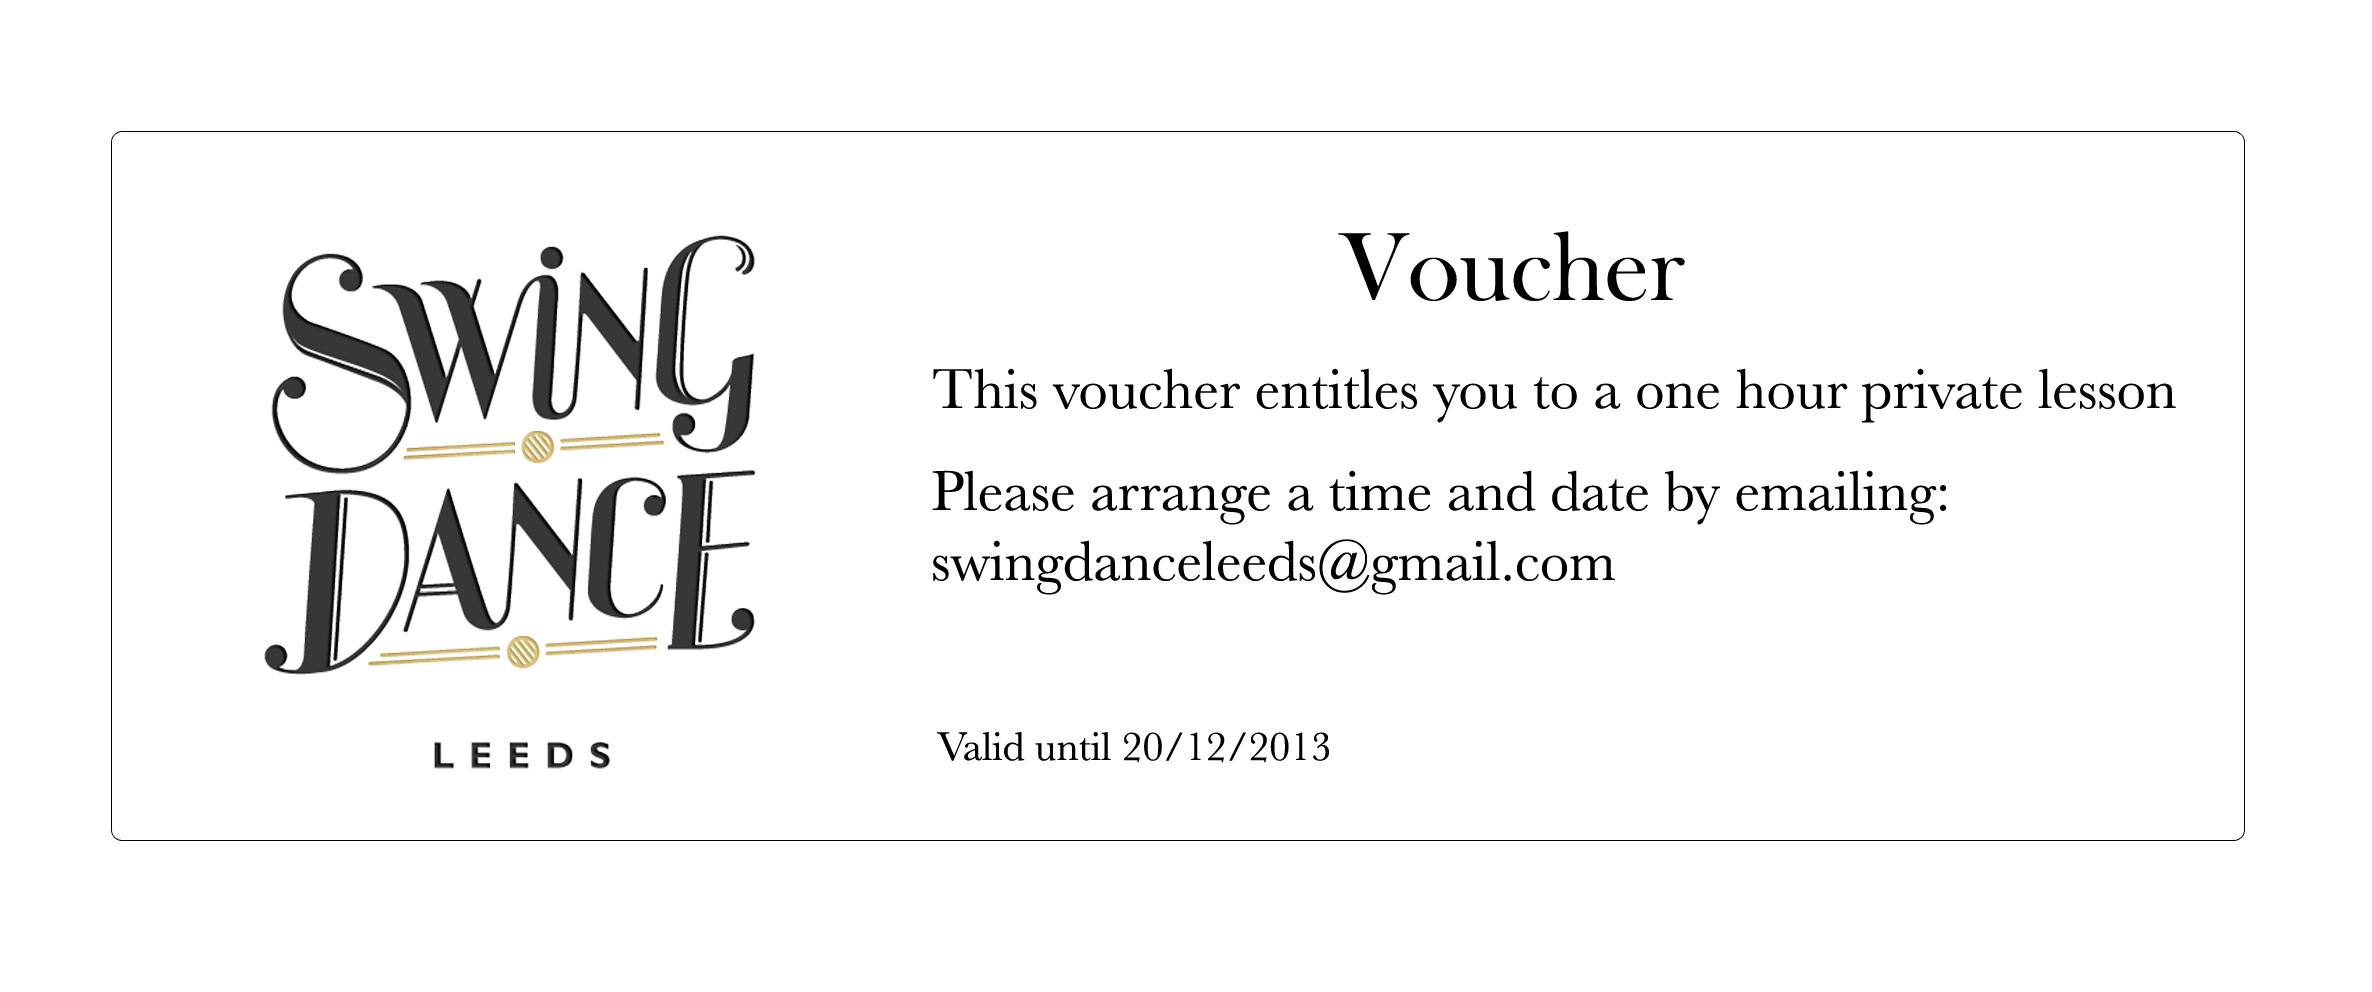 Voucher Web  Make Your Own Voucher